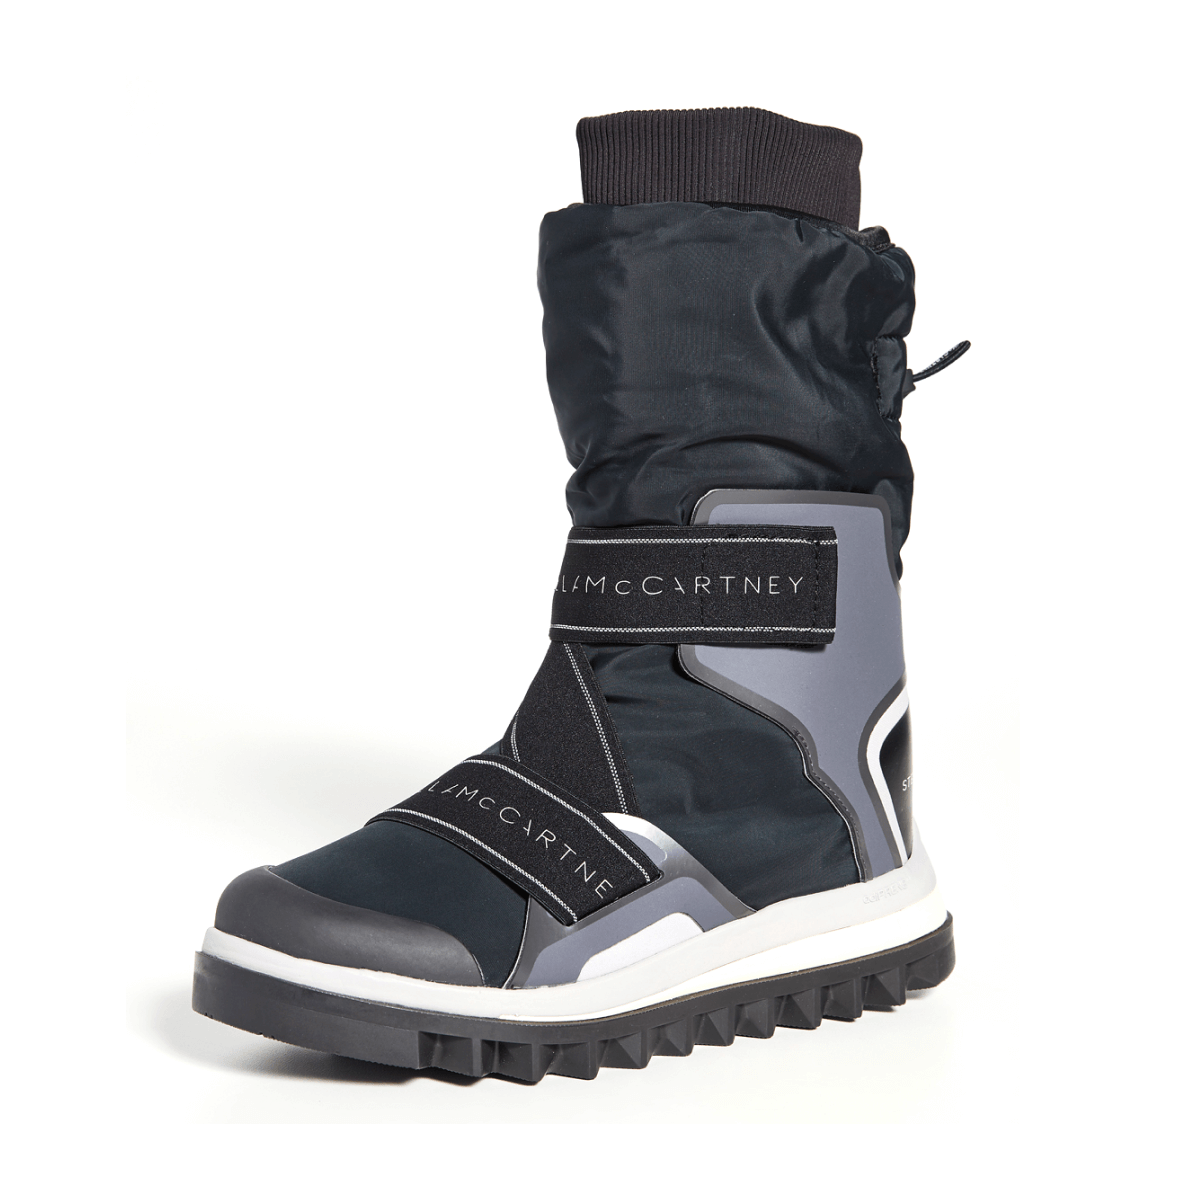 Stella McCartney snow boots